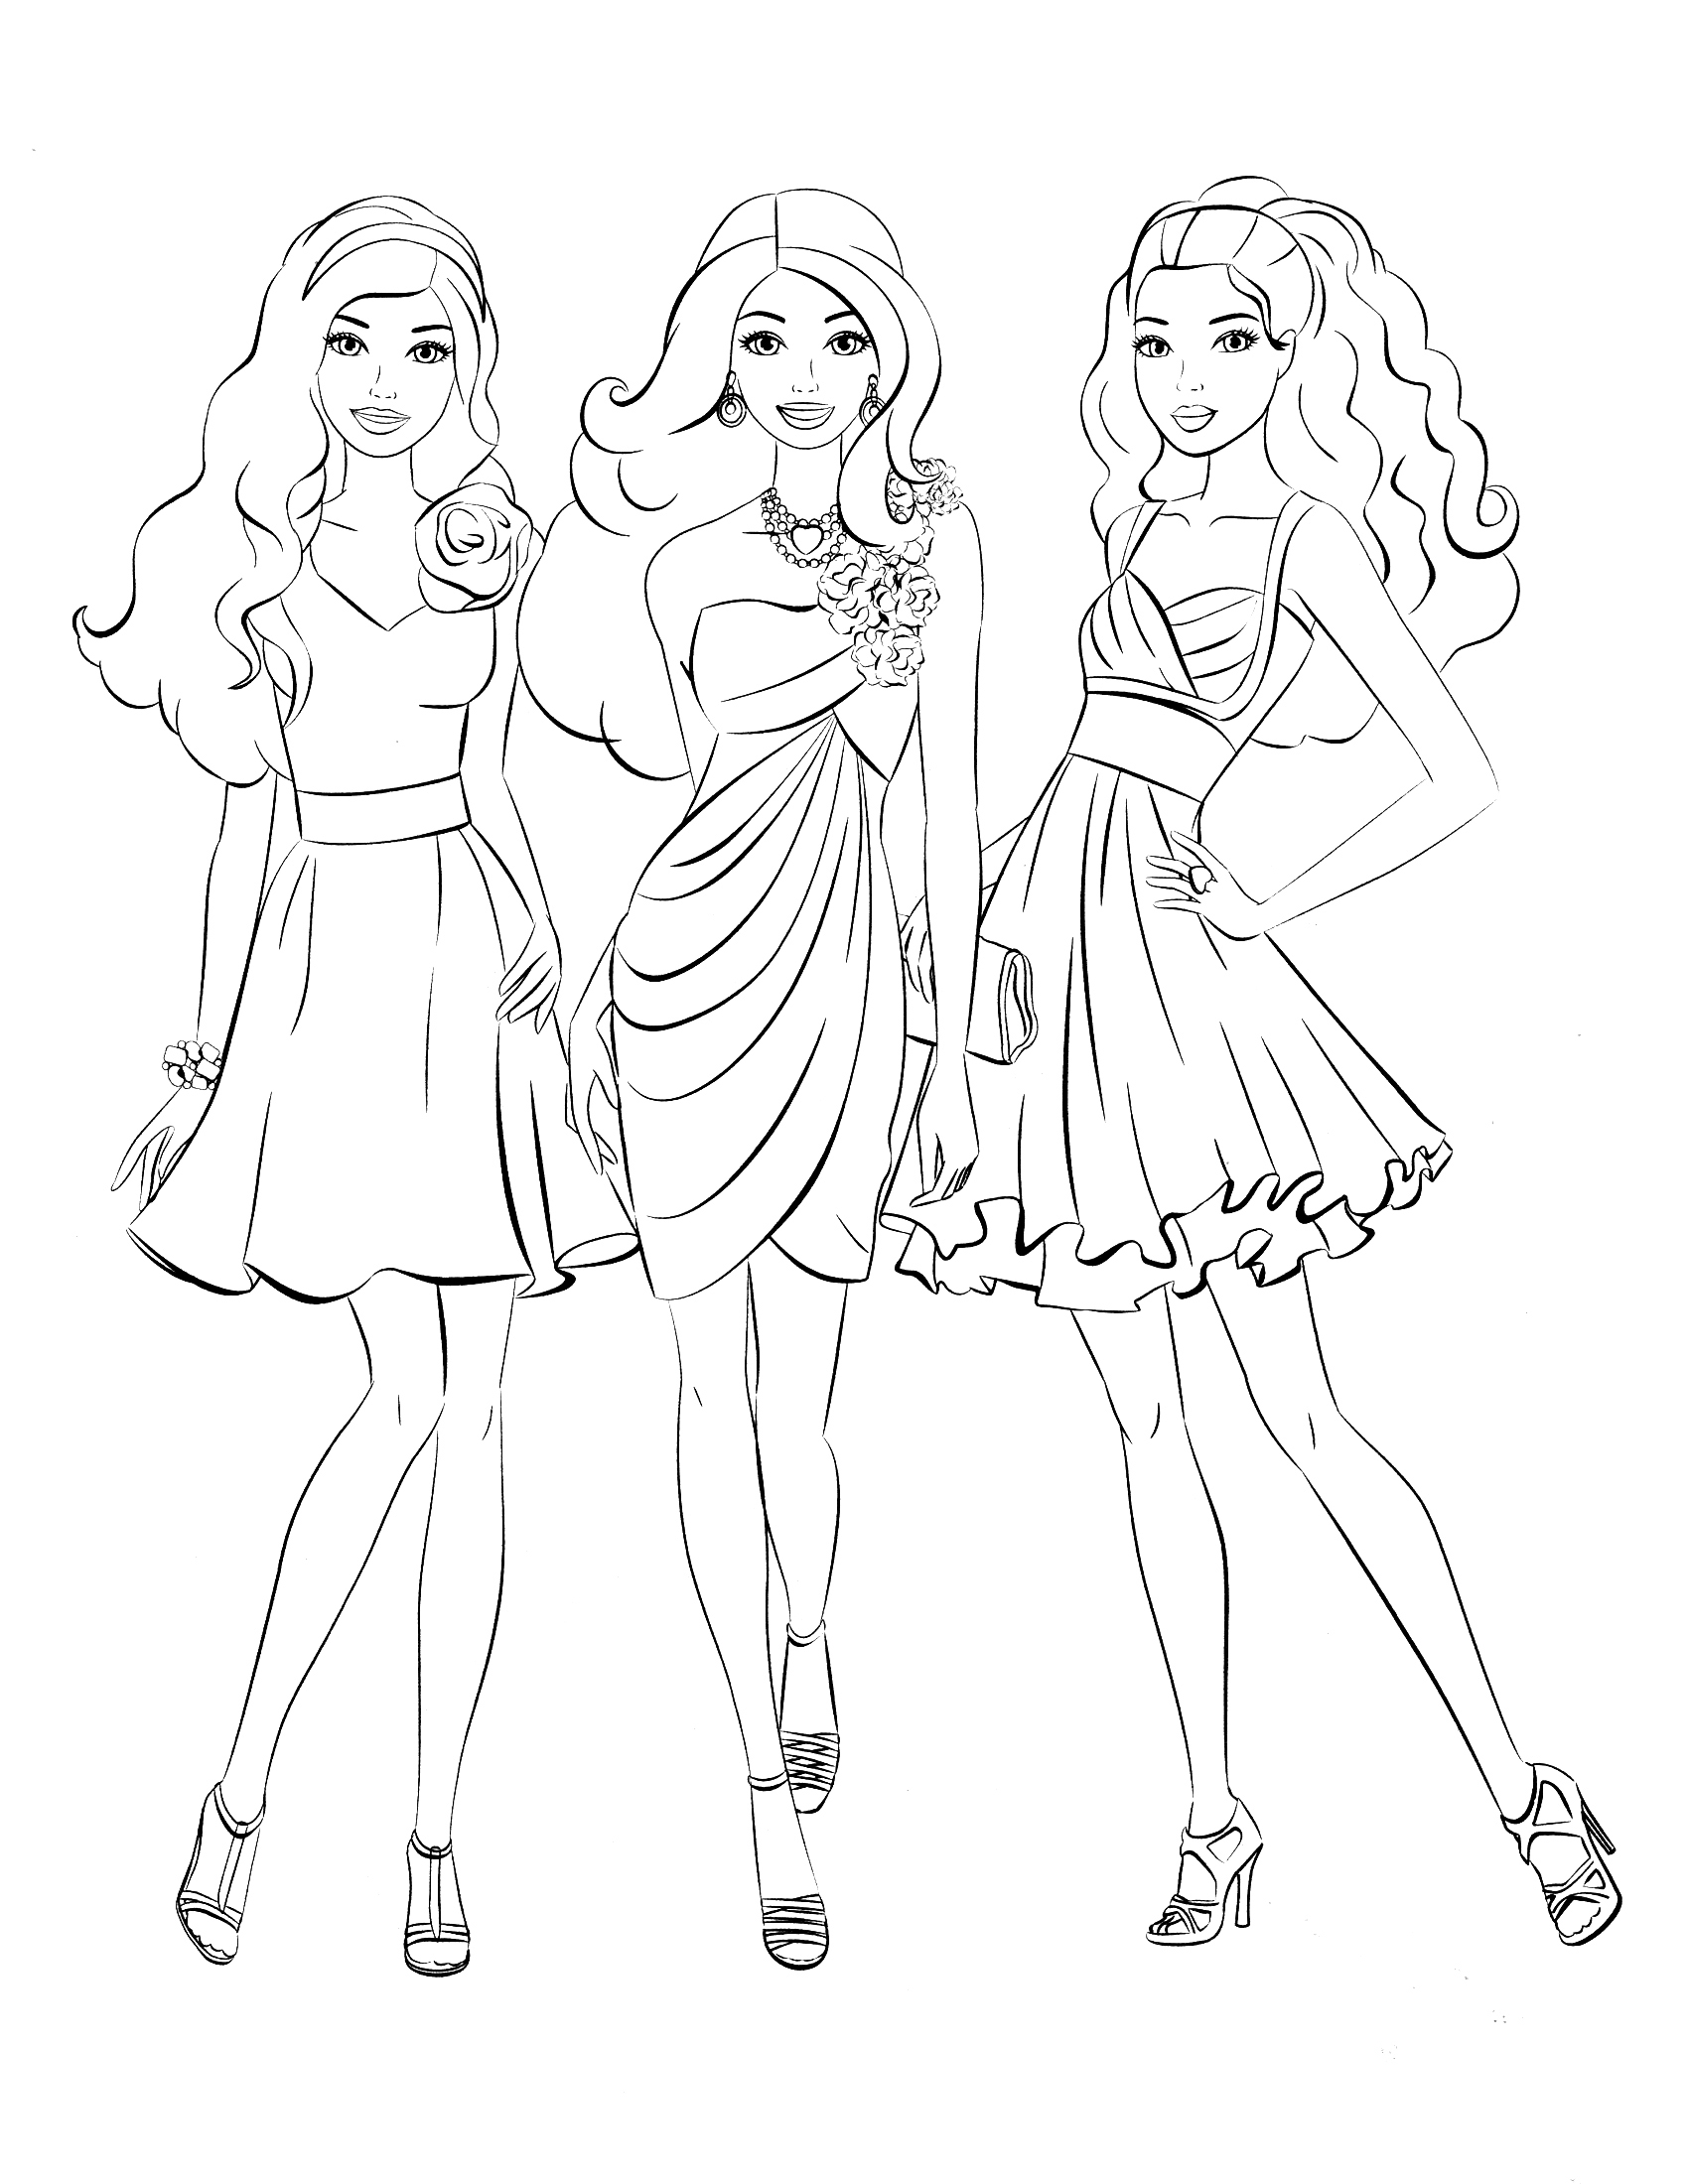 Coloring Pages Barbie to Print 3e - Save it to your computer